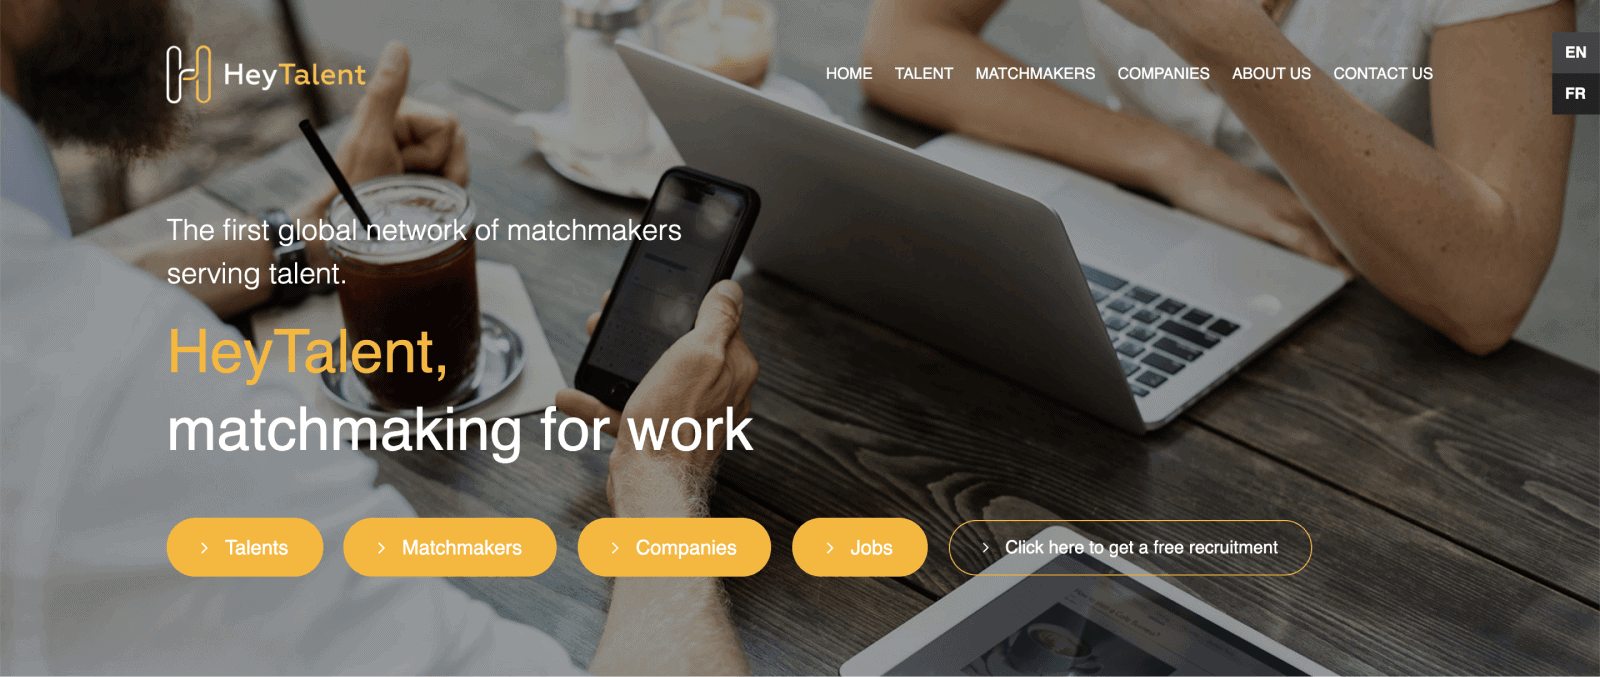 """HeyTalent is a network of """"matchmakers"""" that helps connect talent with employers."""